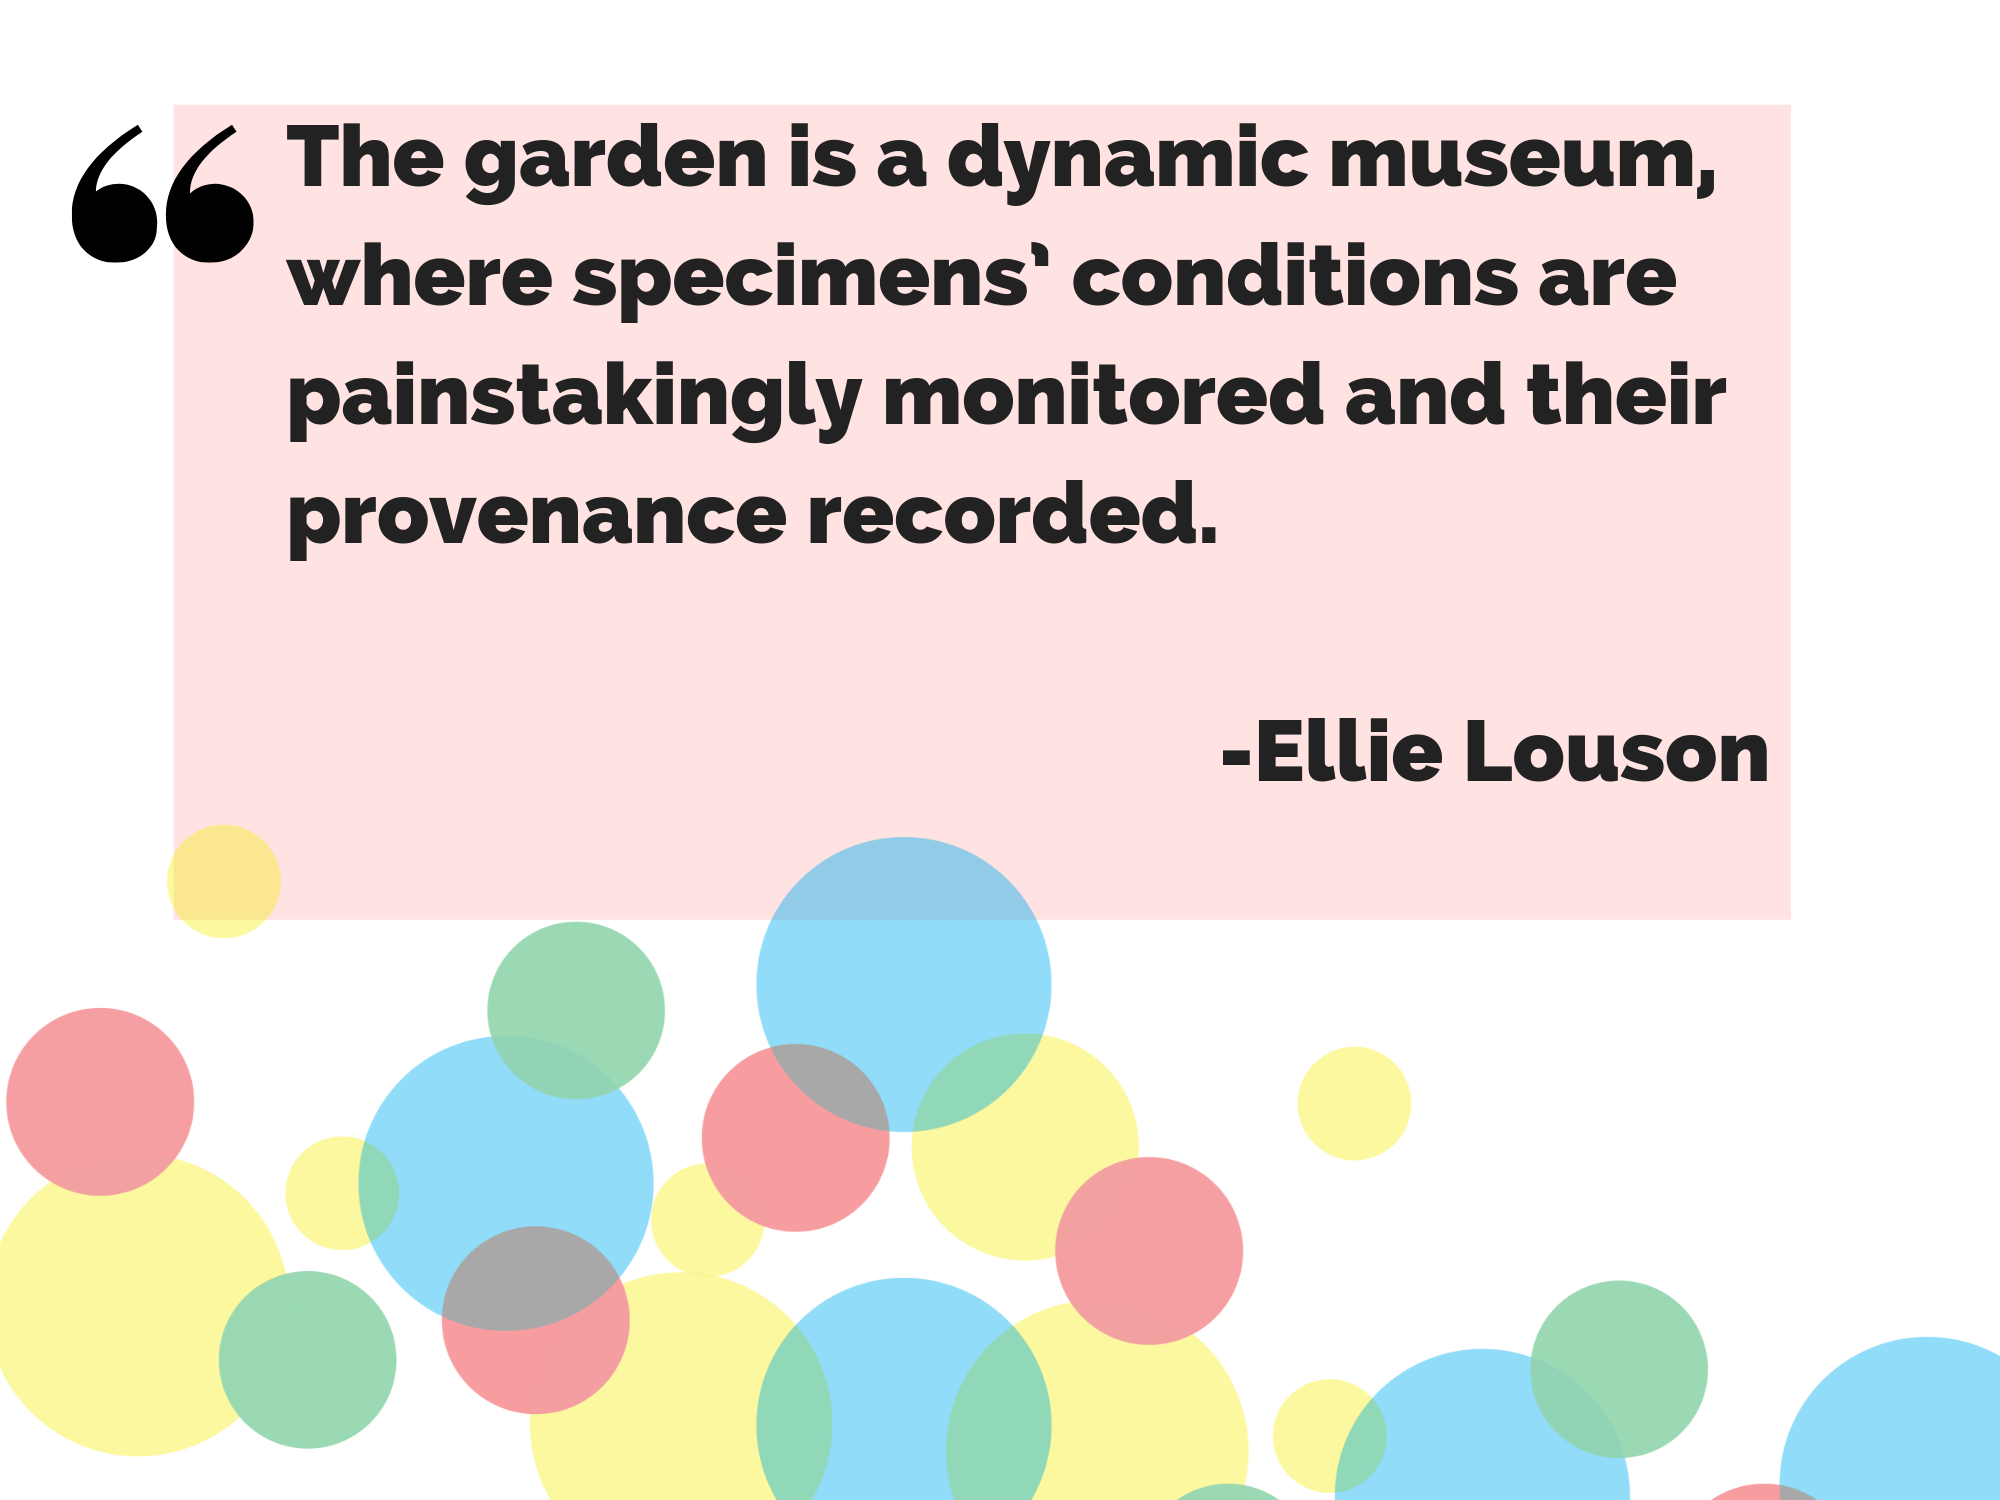 """The garden is a dynamic museum where specimens' conditions are painstakingly monitored and their provenance recorded"" - Ellie Louson"